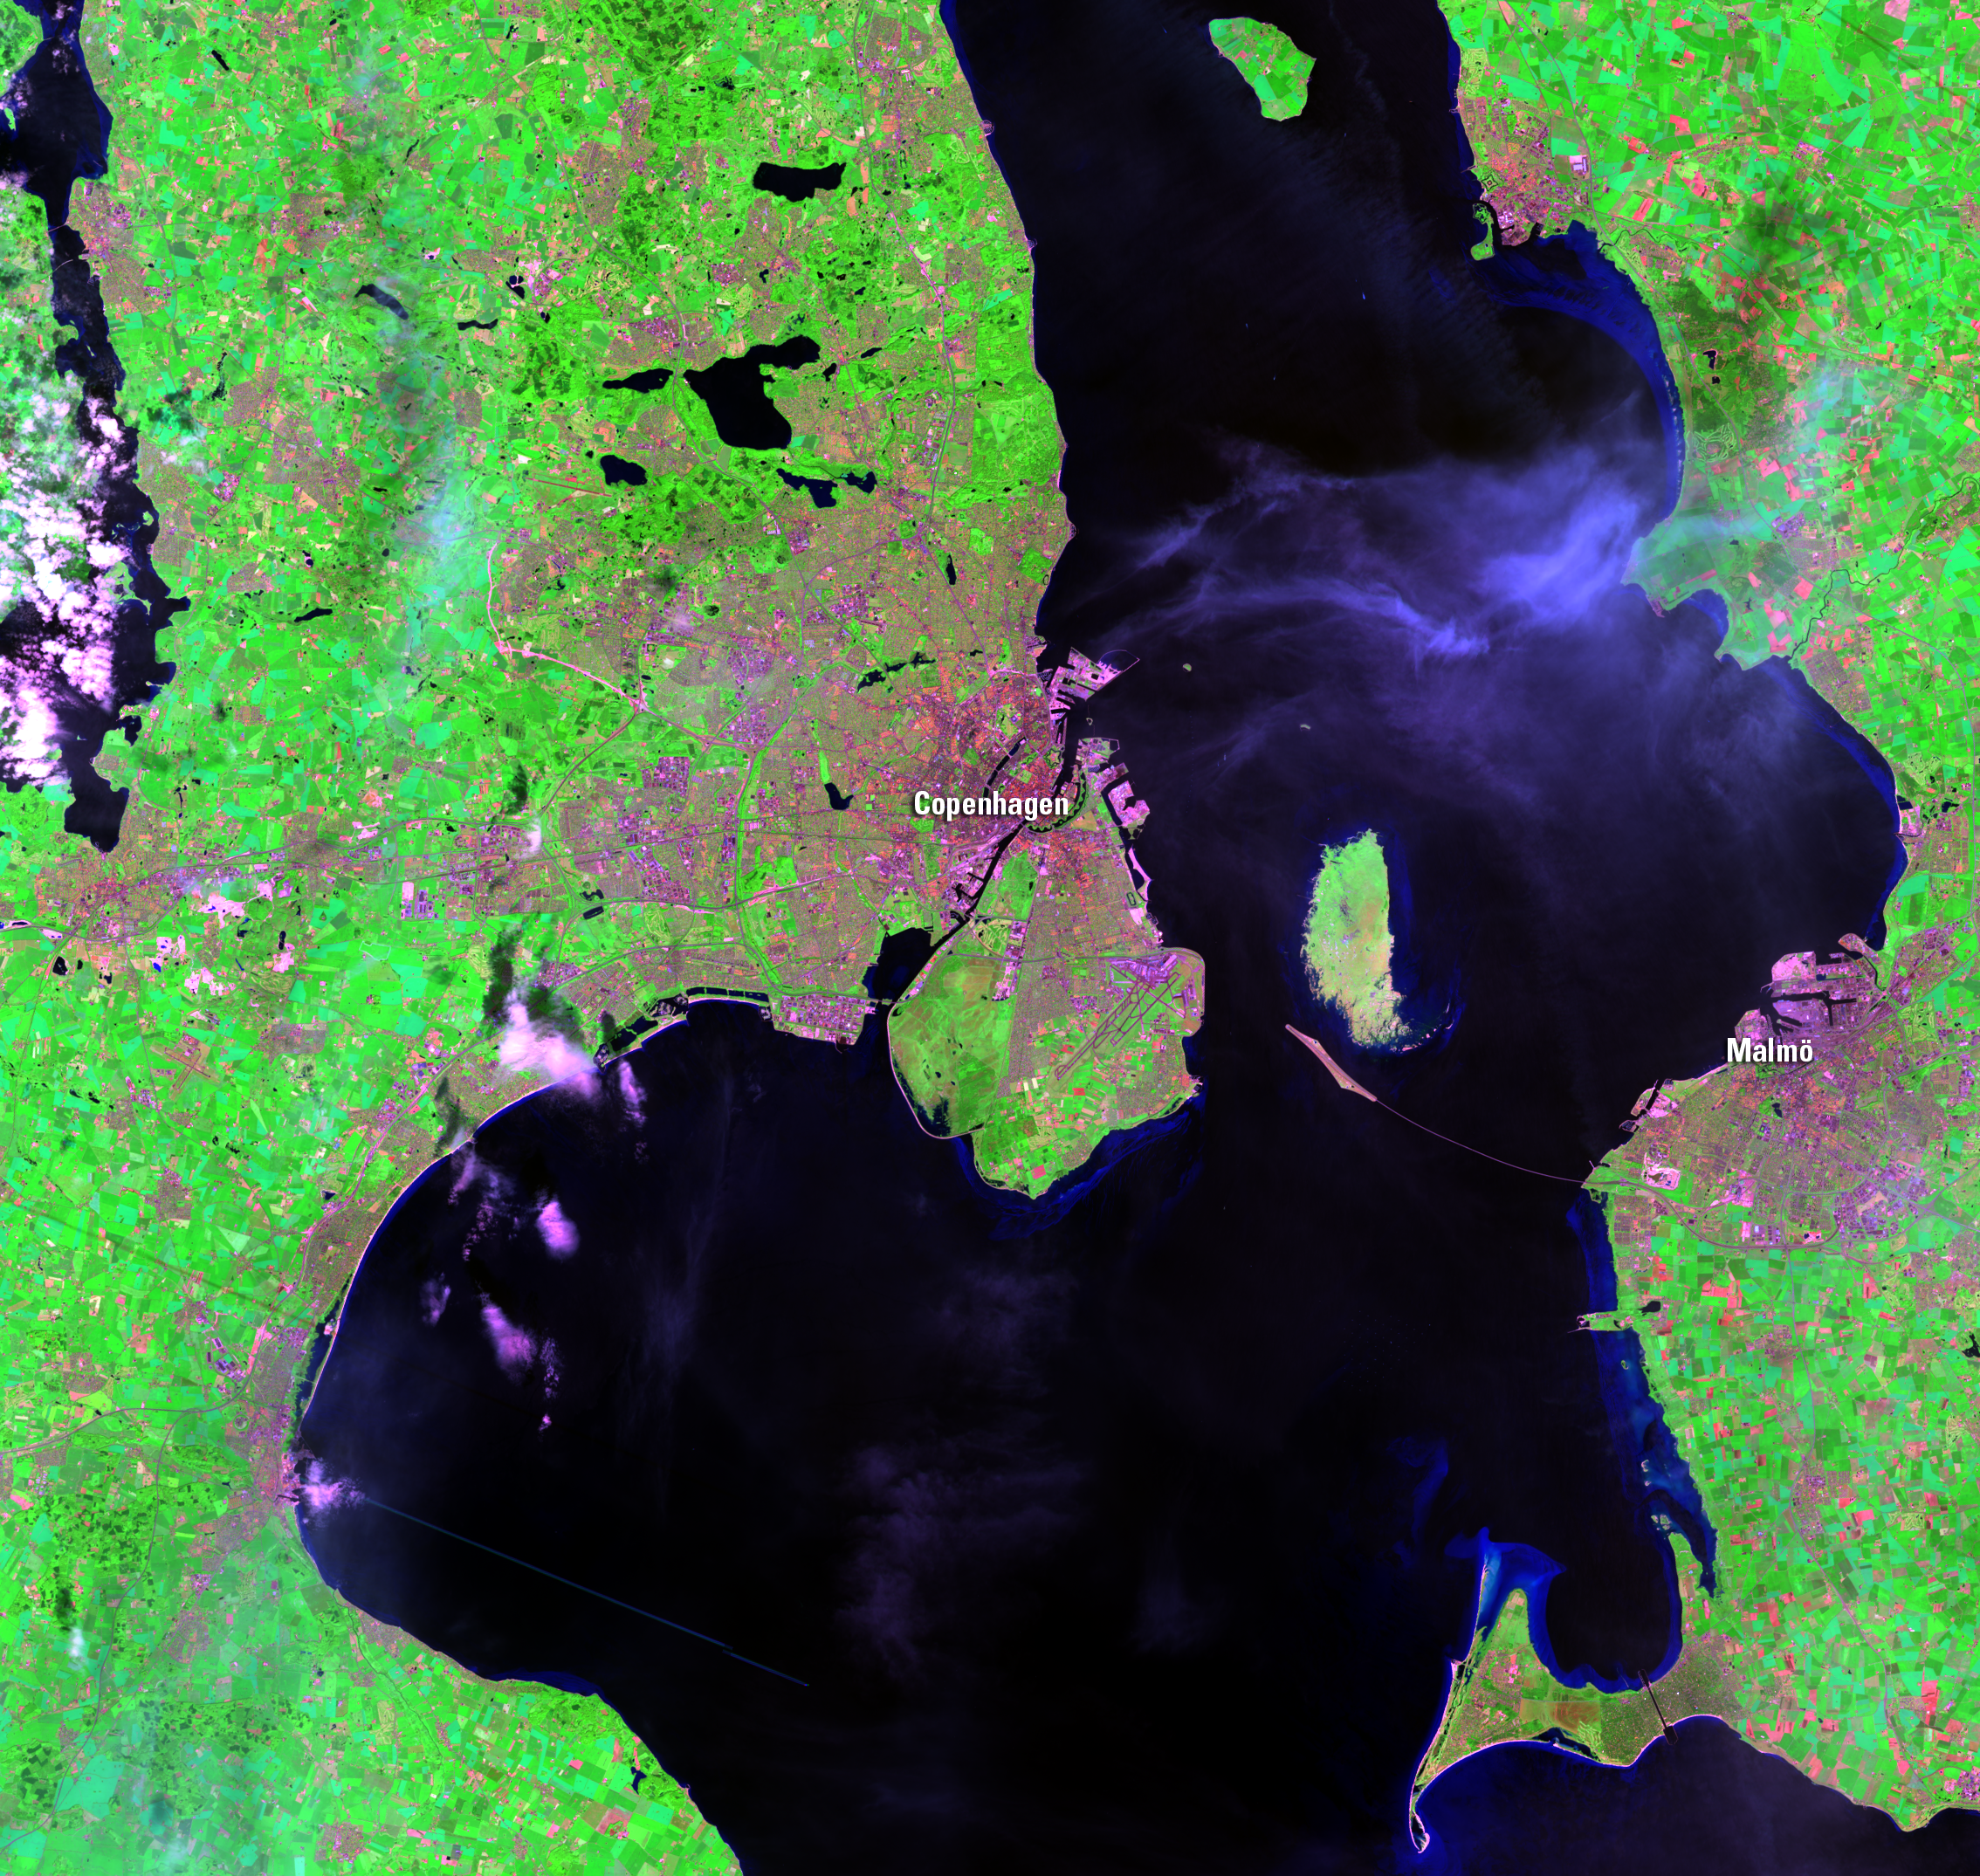 June 17, 2014, Landsat 8 (path/row 194/21) — Copenhagen, Denmark